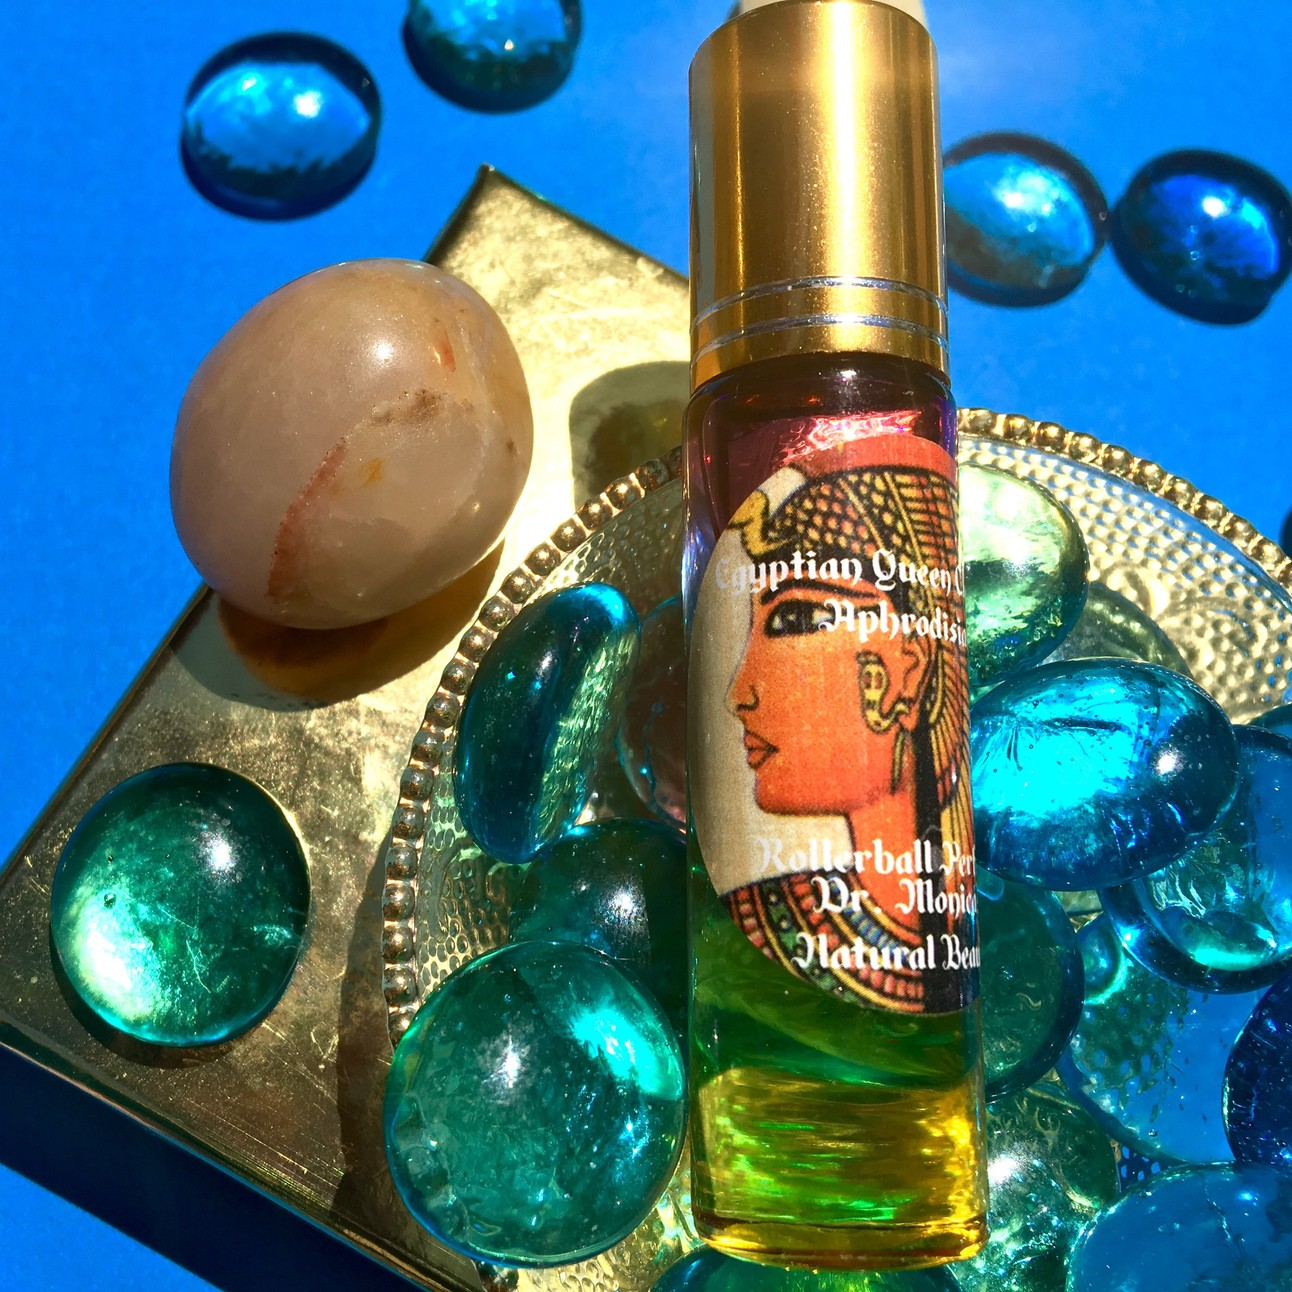 Dr. Monica's Cleopatra Body oil